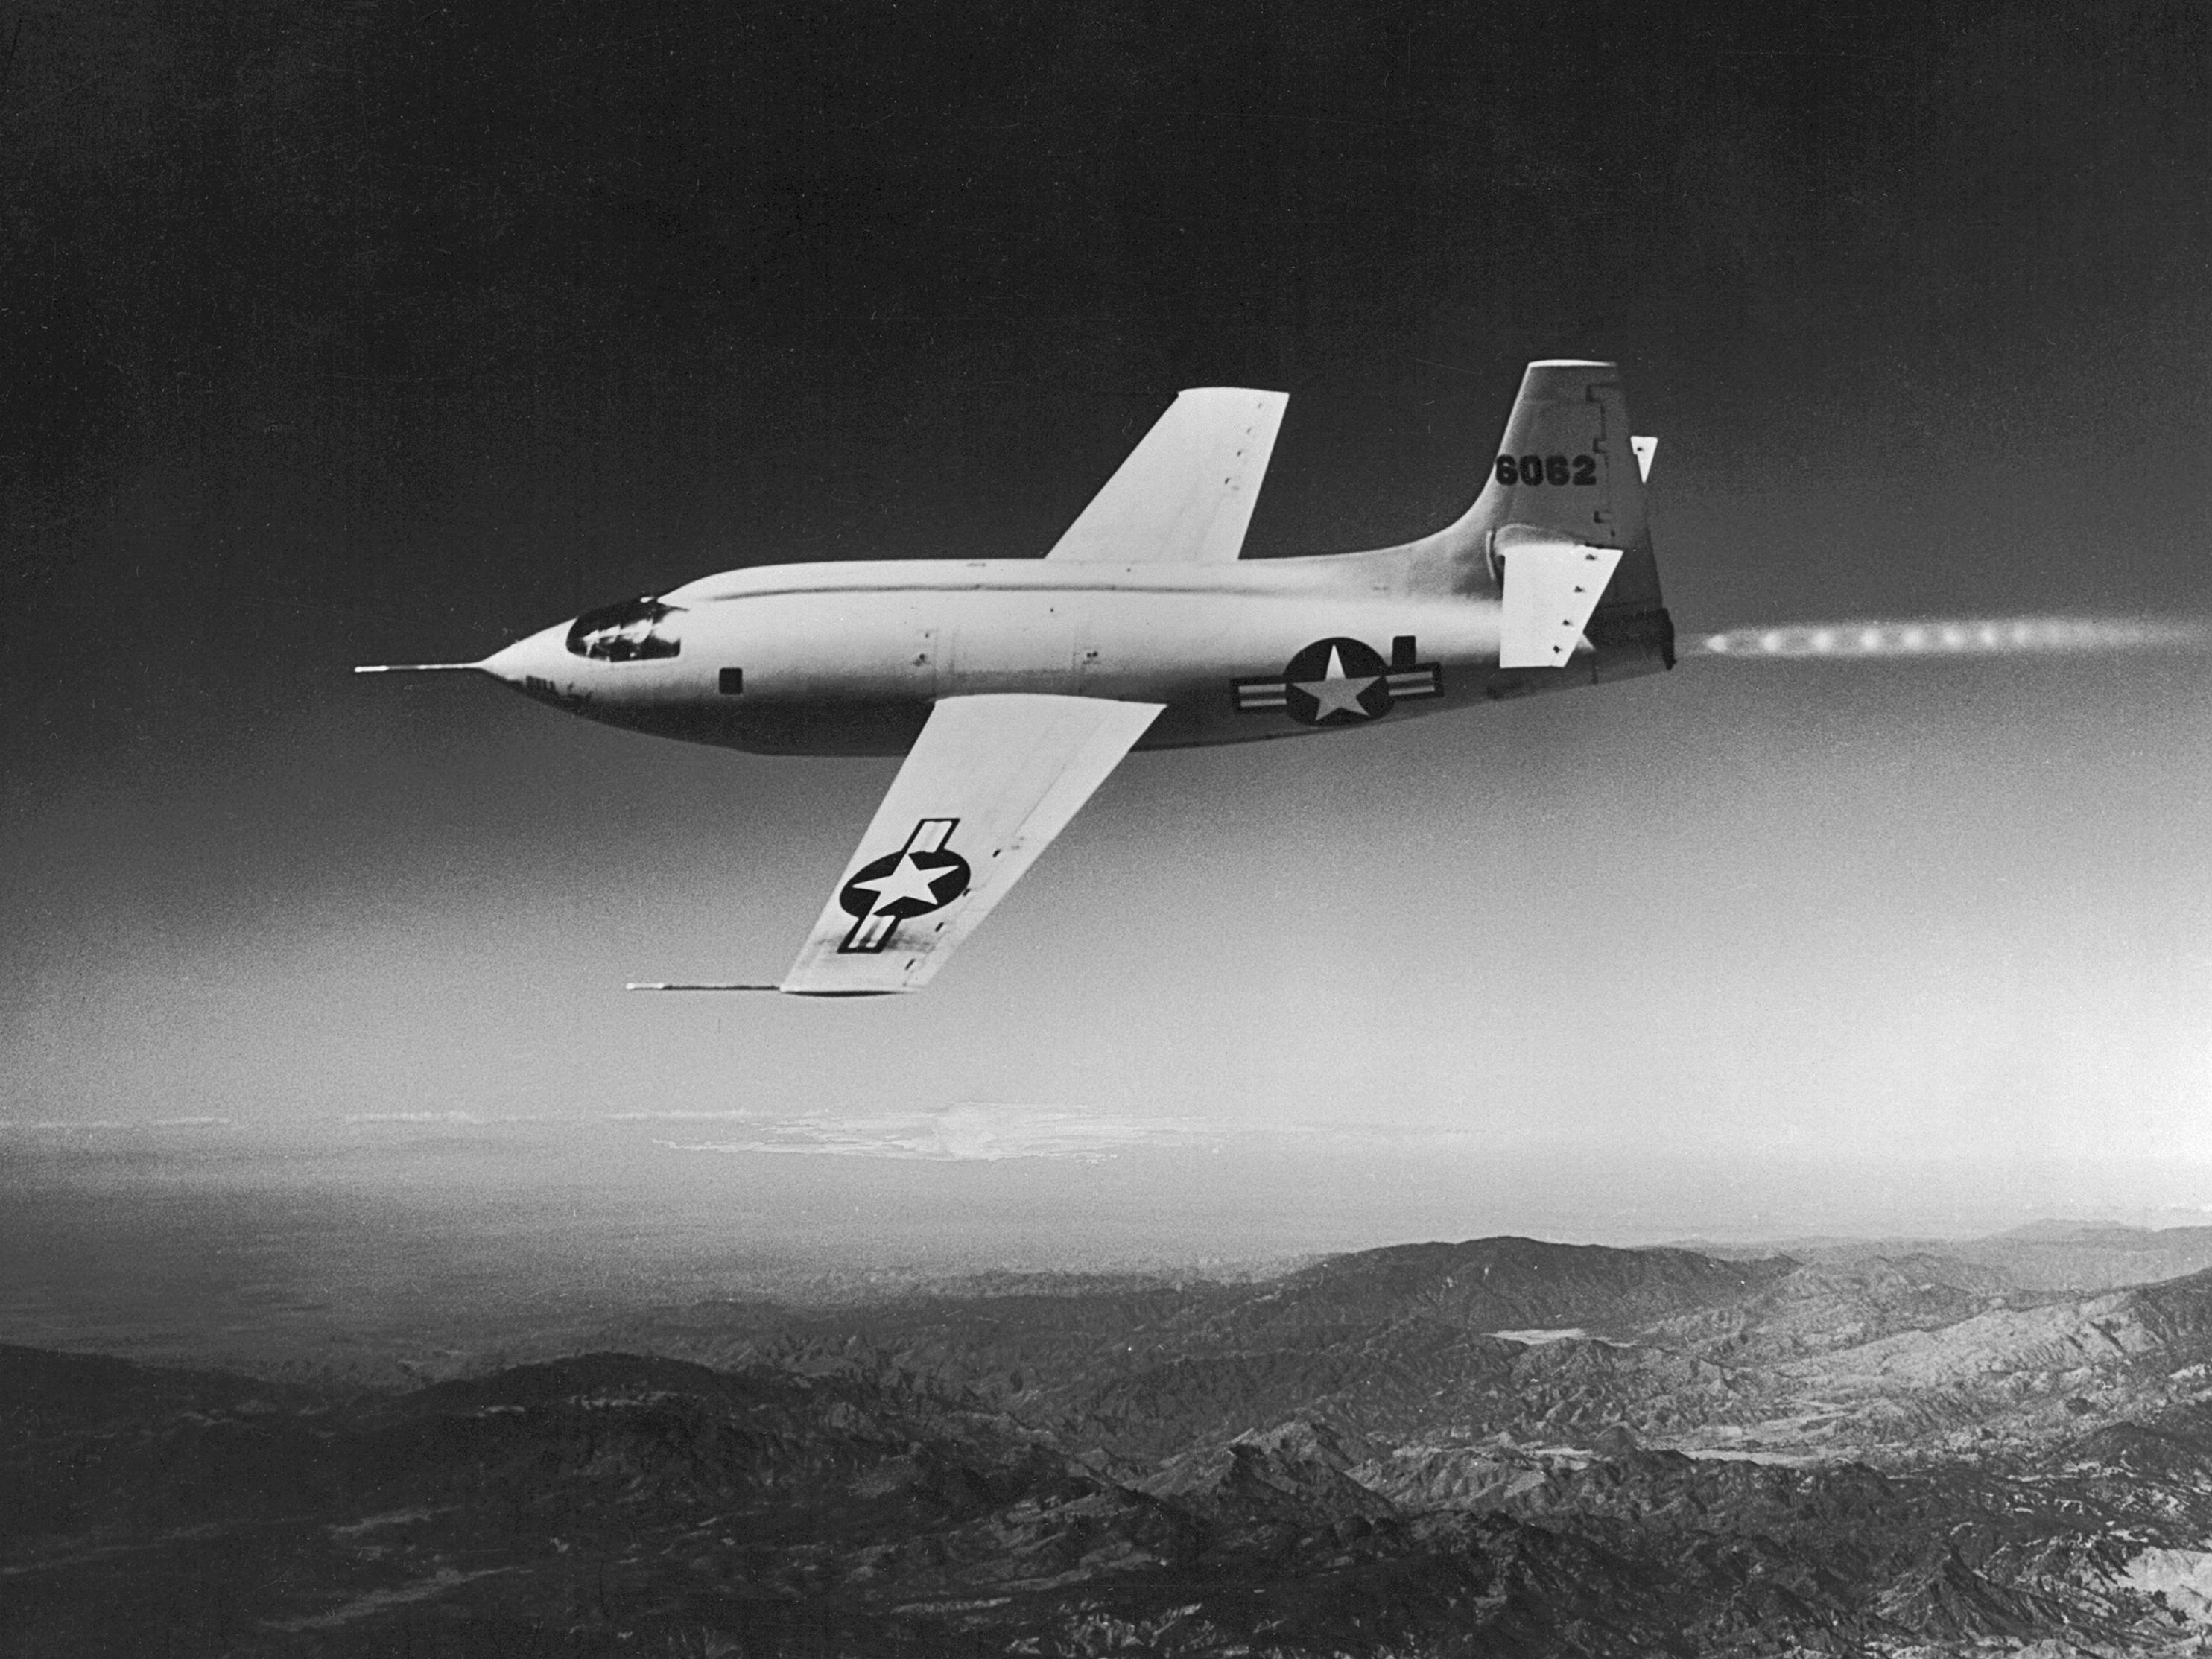 On This Day in Space! June 23, 1949: XS-1 rocket plane takes 117th Flight